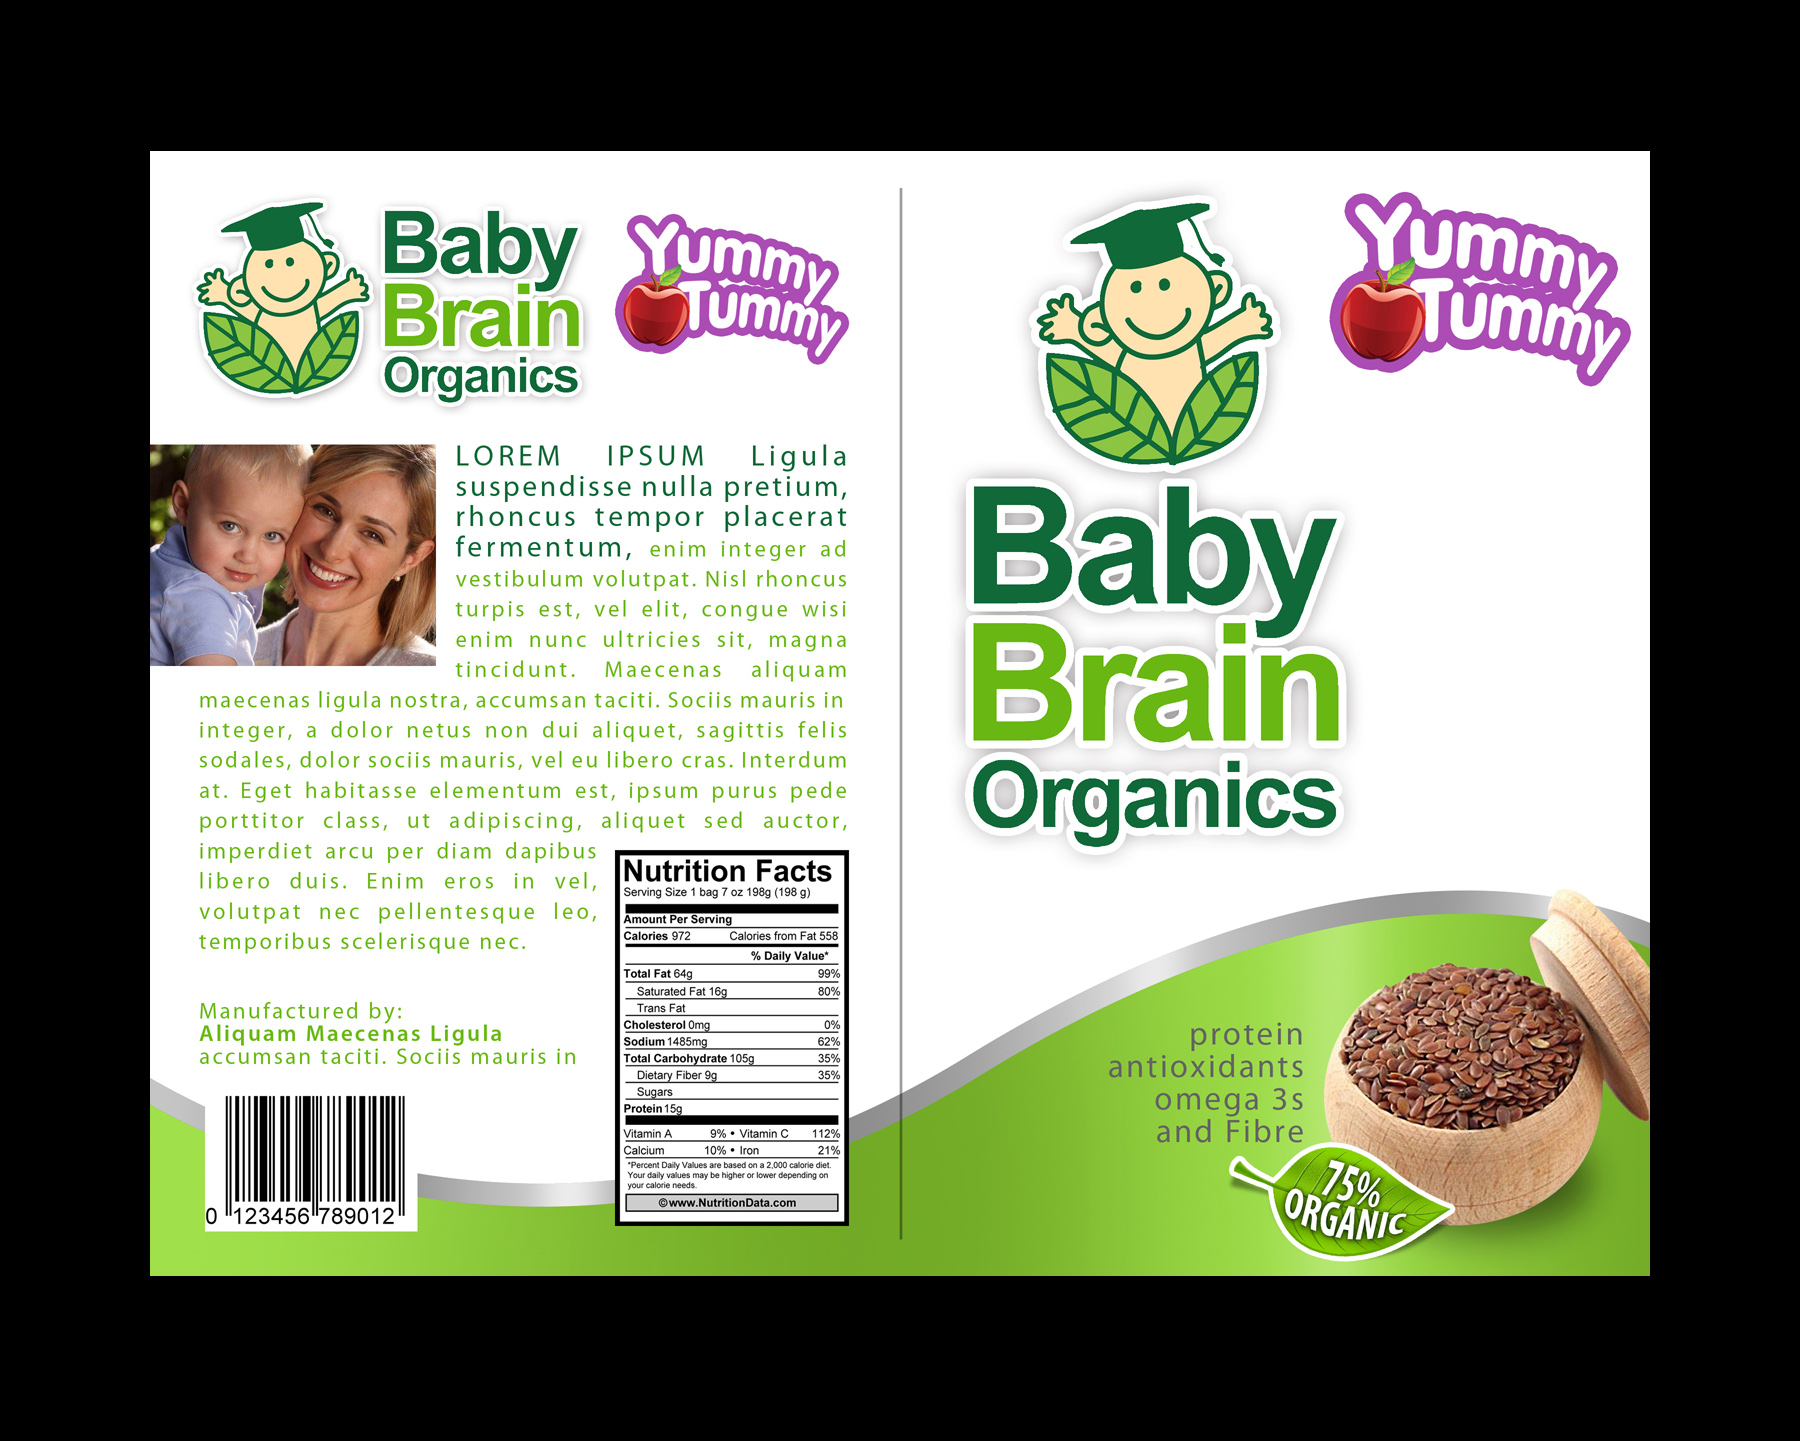 Packaging Design by moidgreat - Entry No. 40 in the Packaging Design Contest Baby Brain Organics Packaging Design.